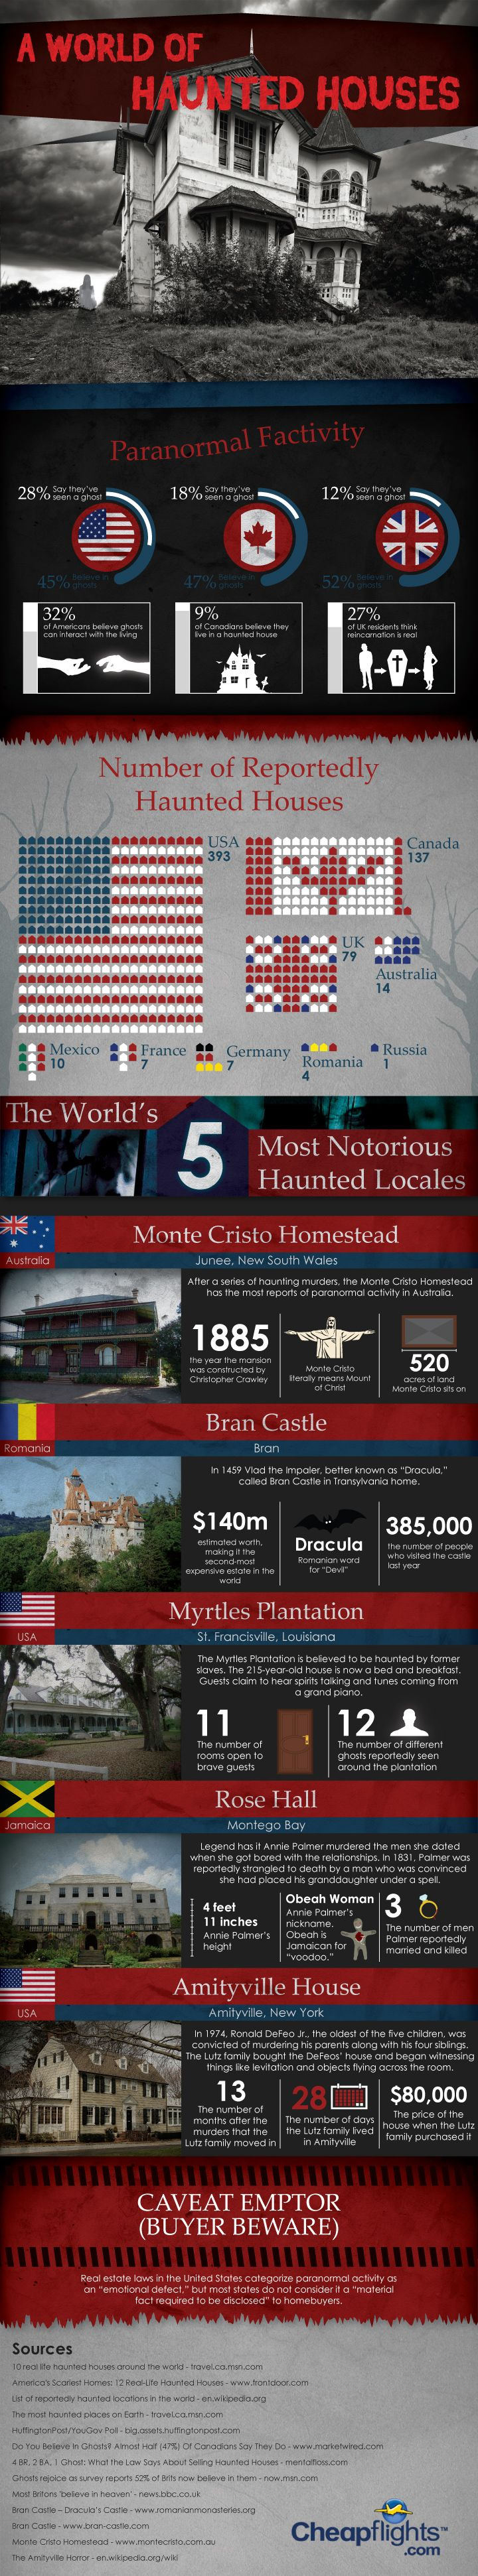 Paranormal Fact-ivity A World Of Haunted Houses